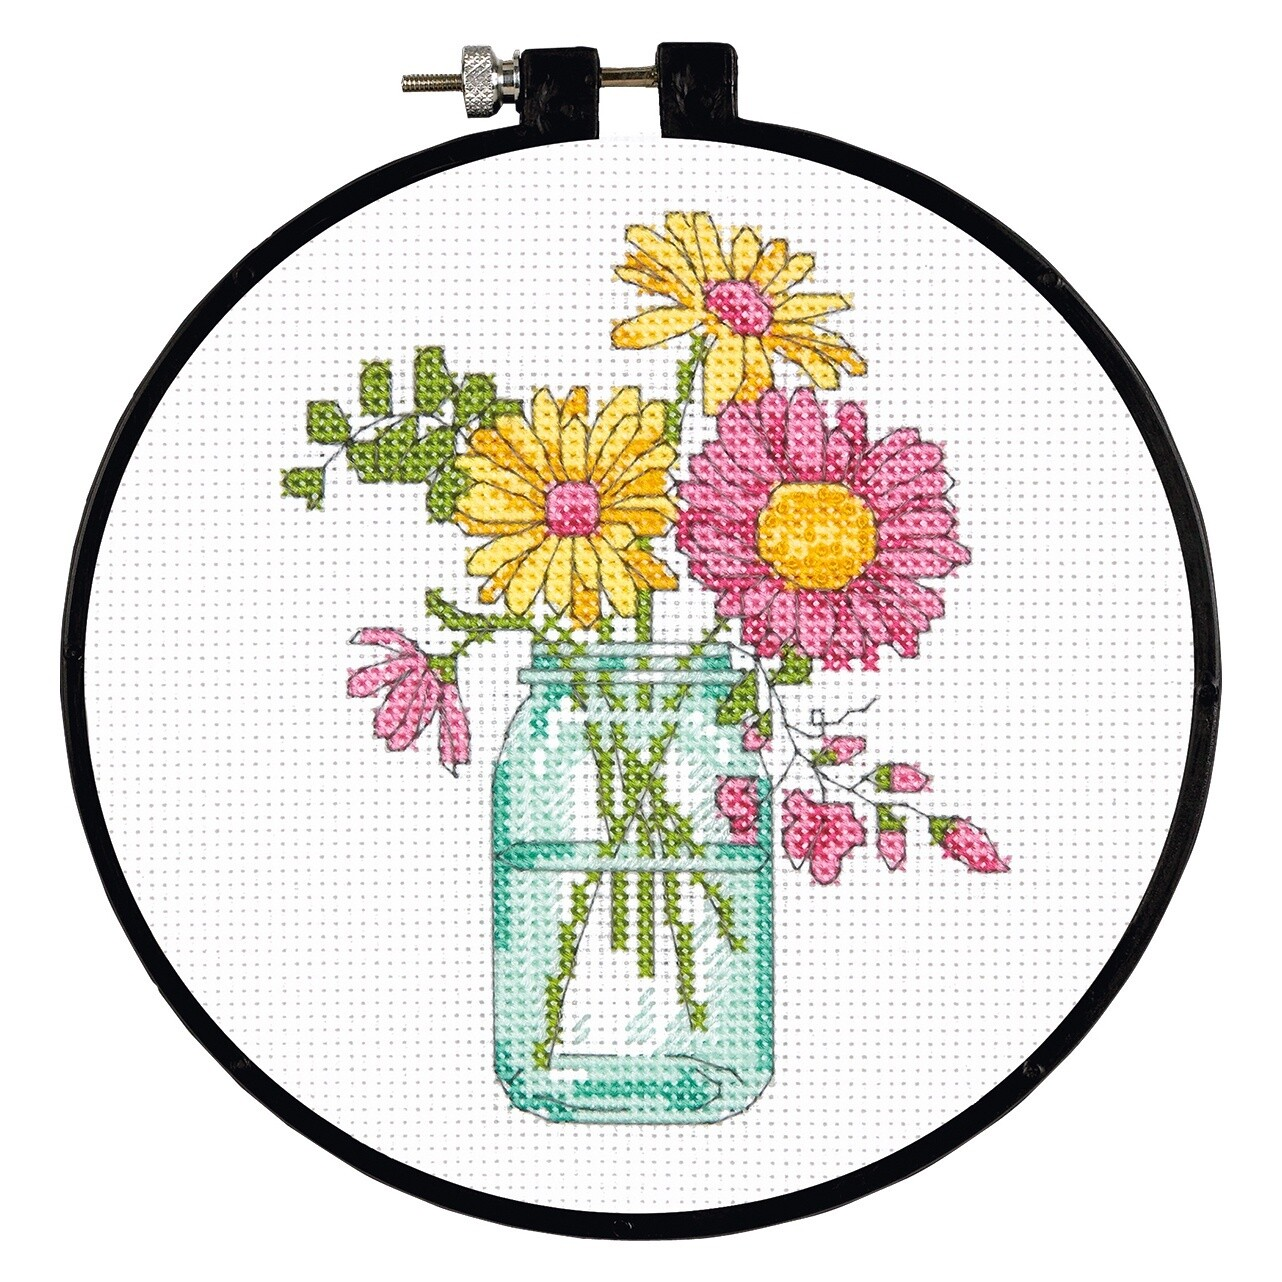 Learn-a-Craft: Counted Cross Stitch Kit with Hoop: Summer Flowers